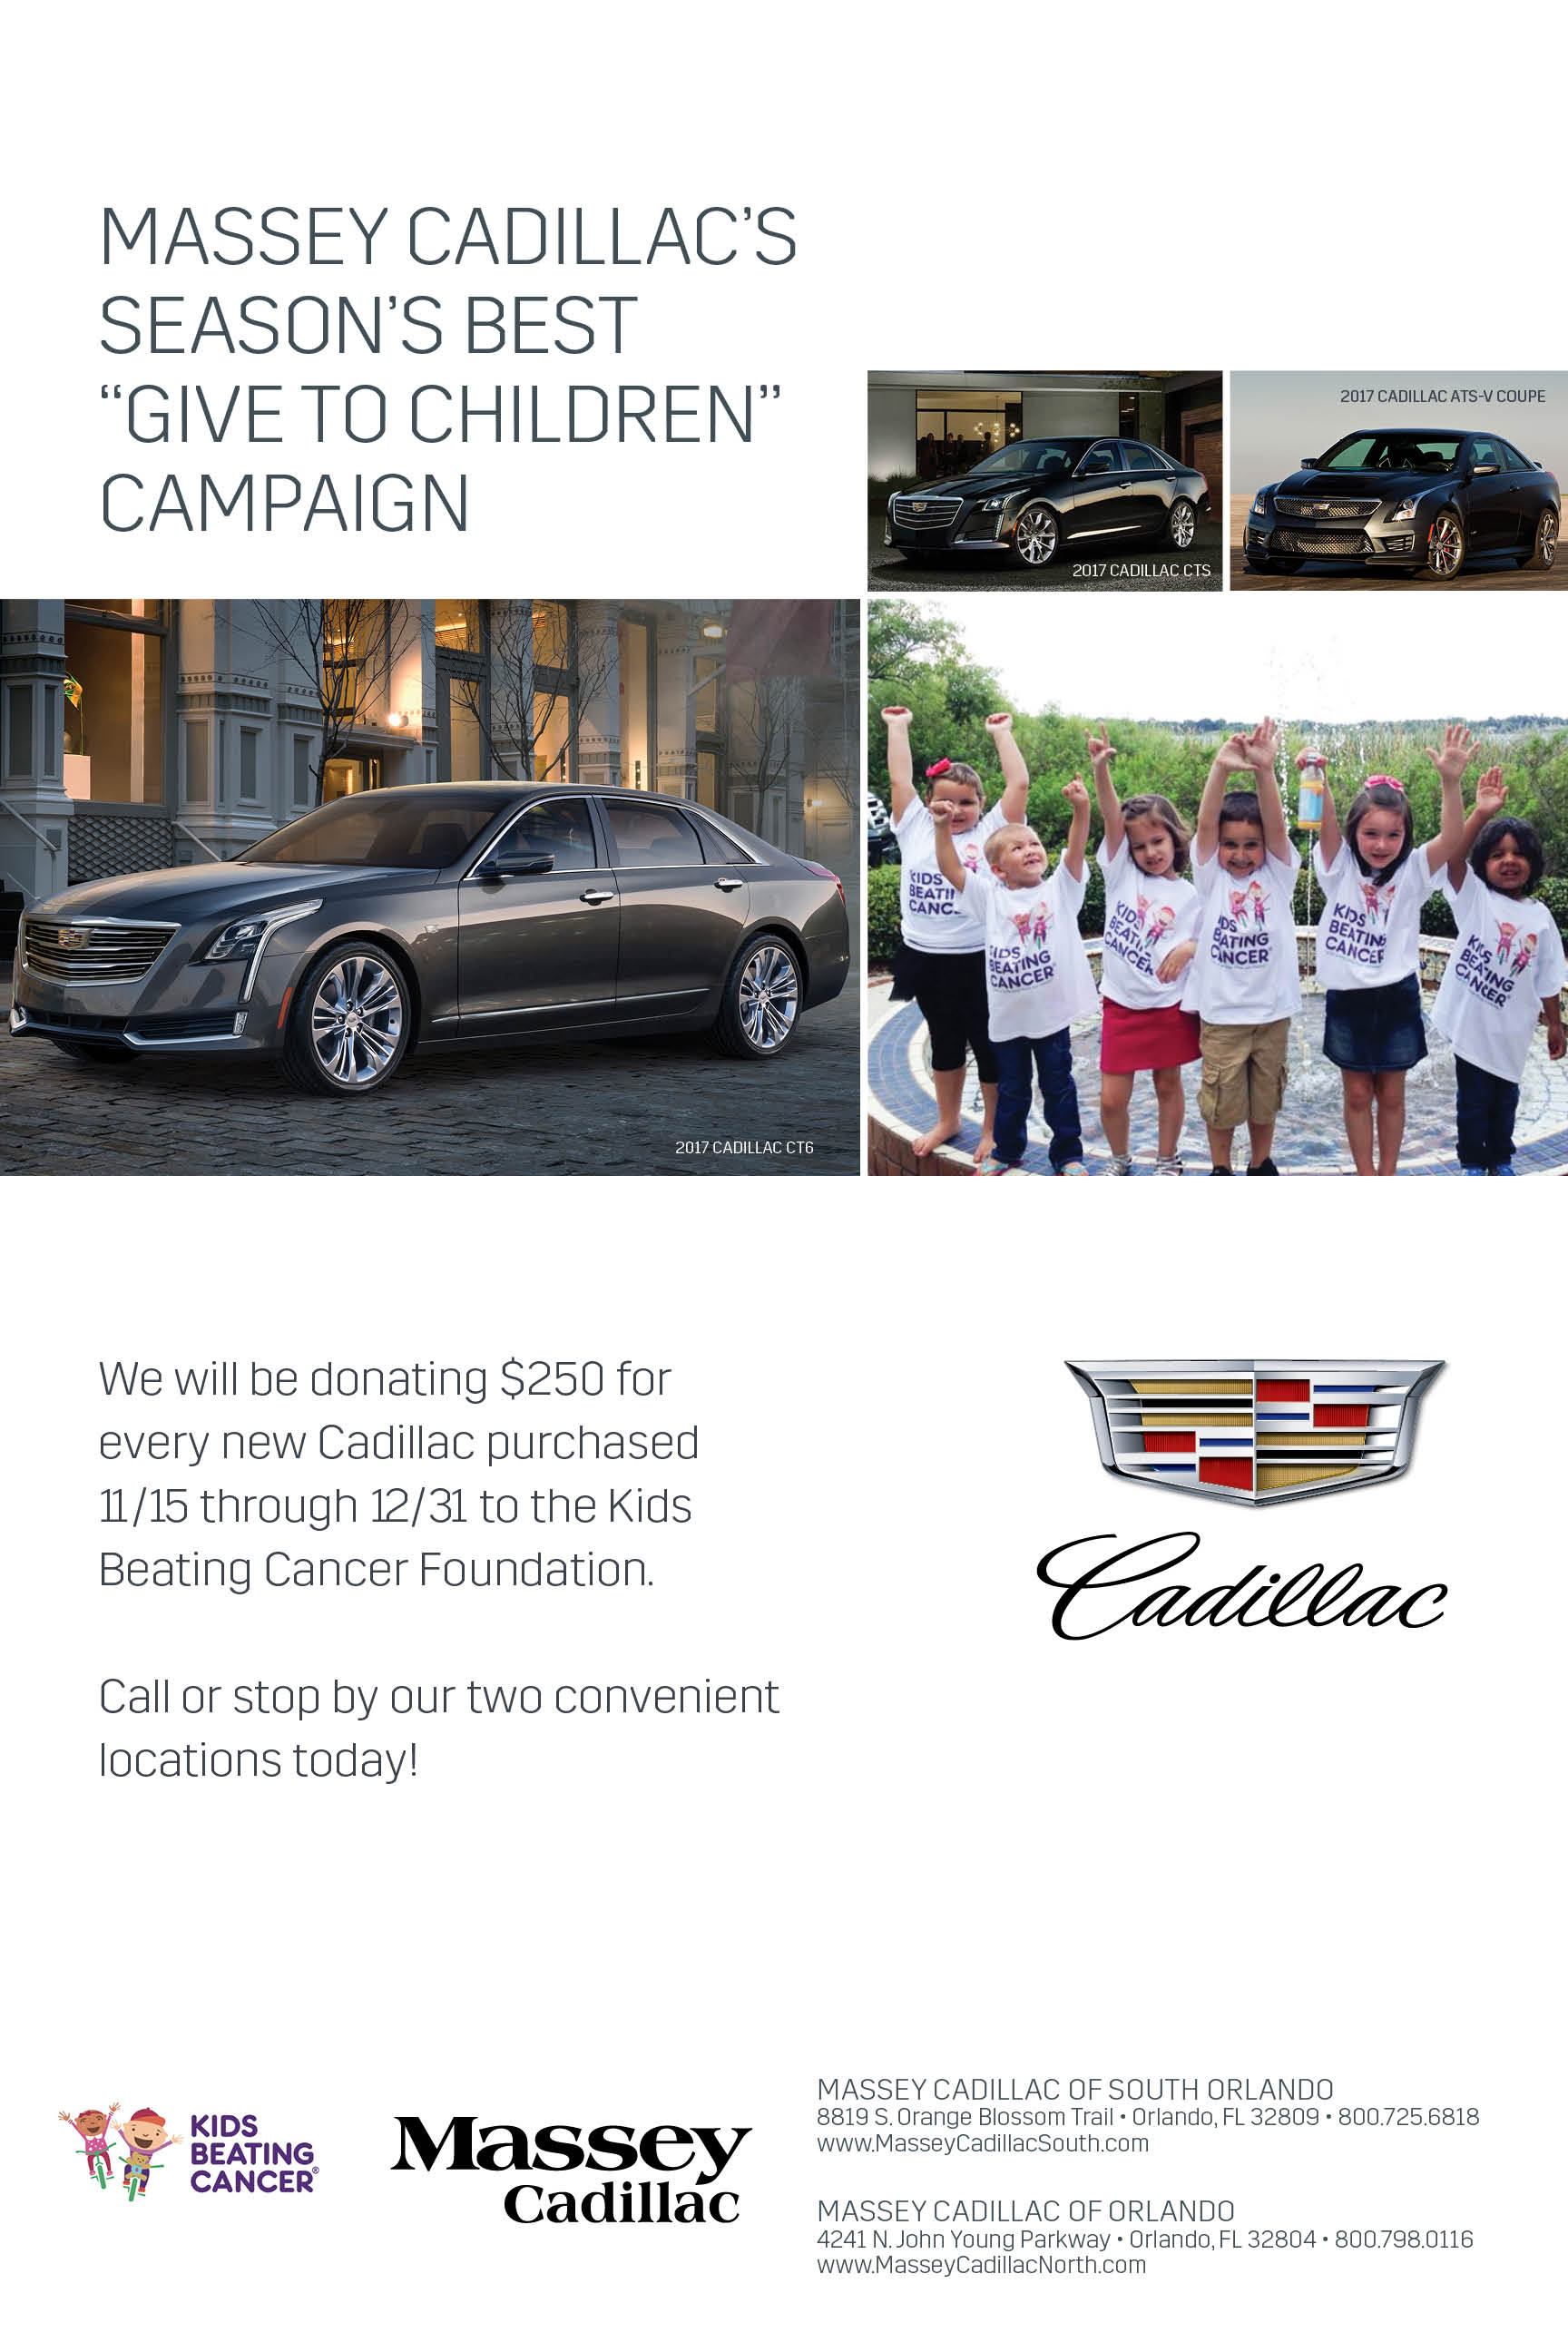 seasons-best-campaign-for-kids-beating-cancer